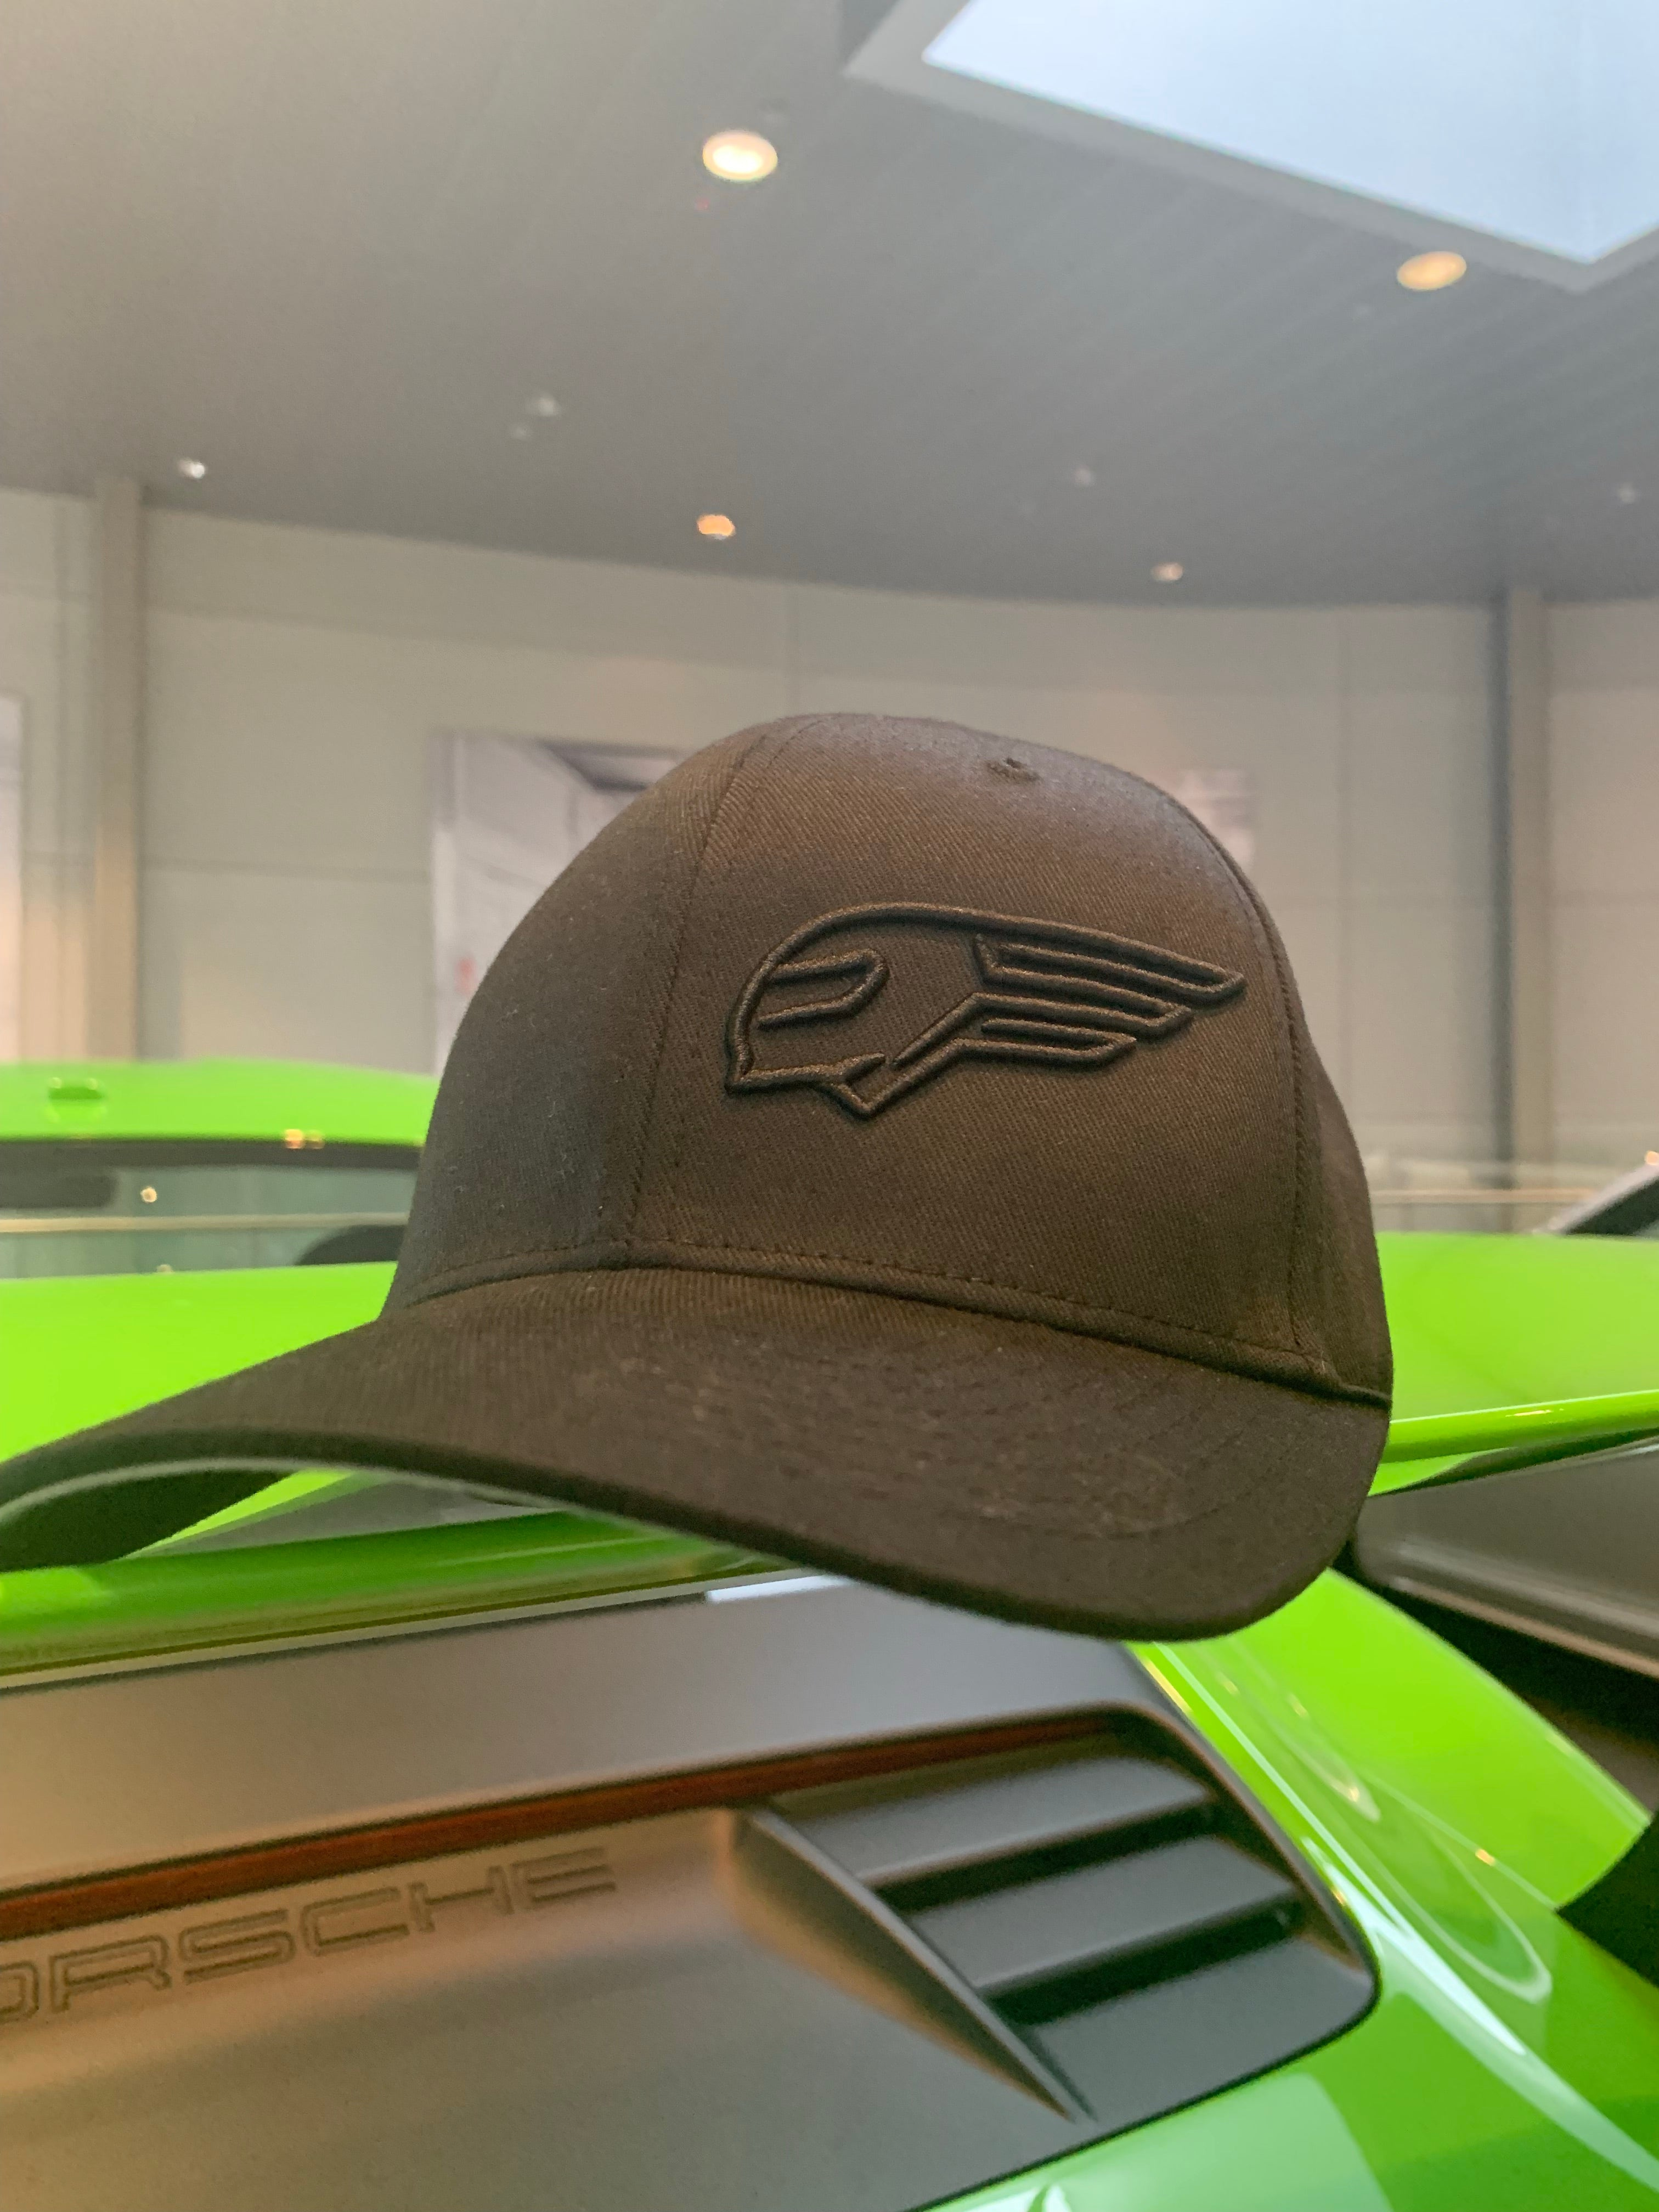 Apparel - RENNWERKSTATT - Base Cap/Hat (new)